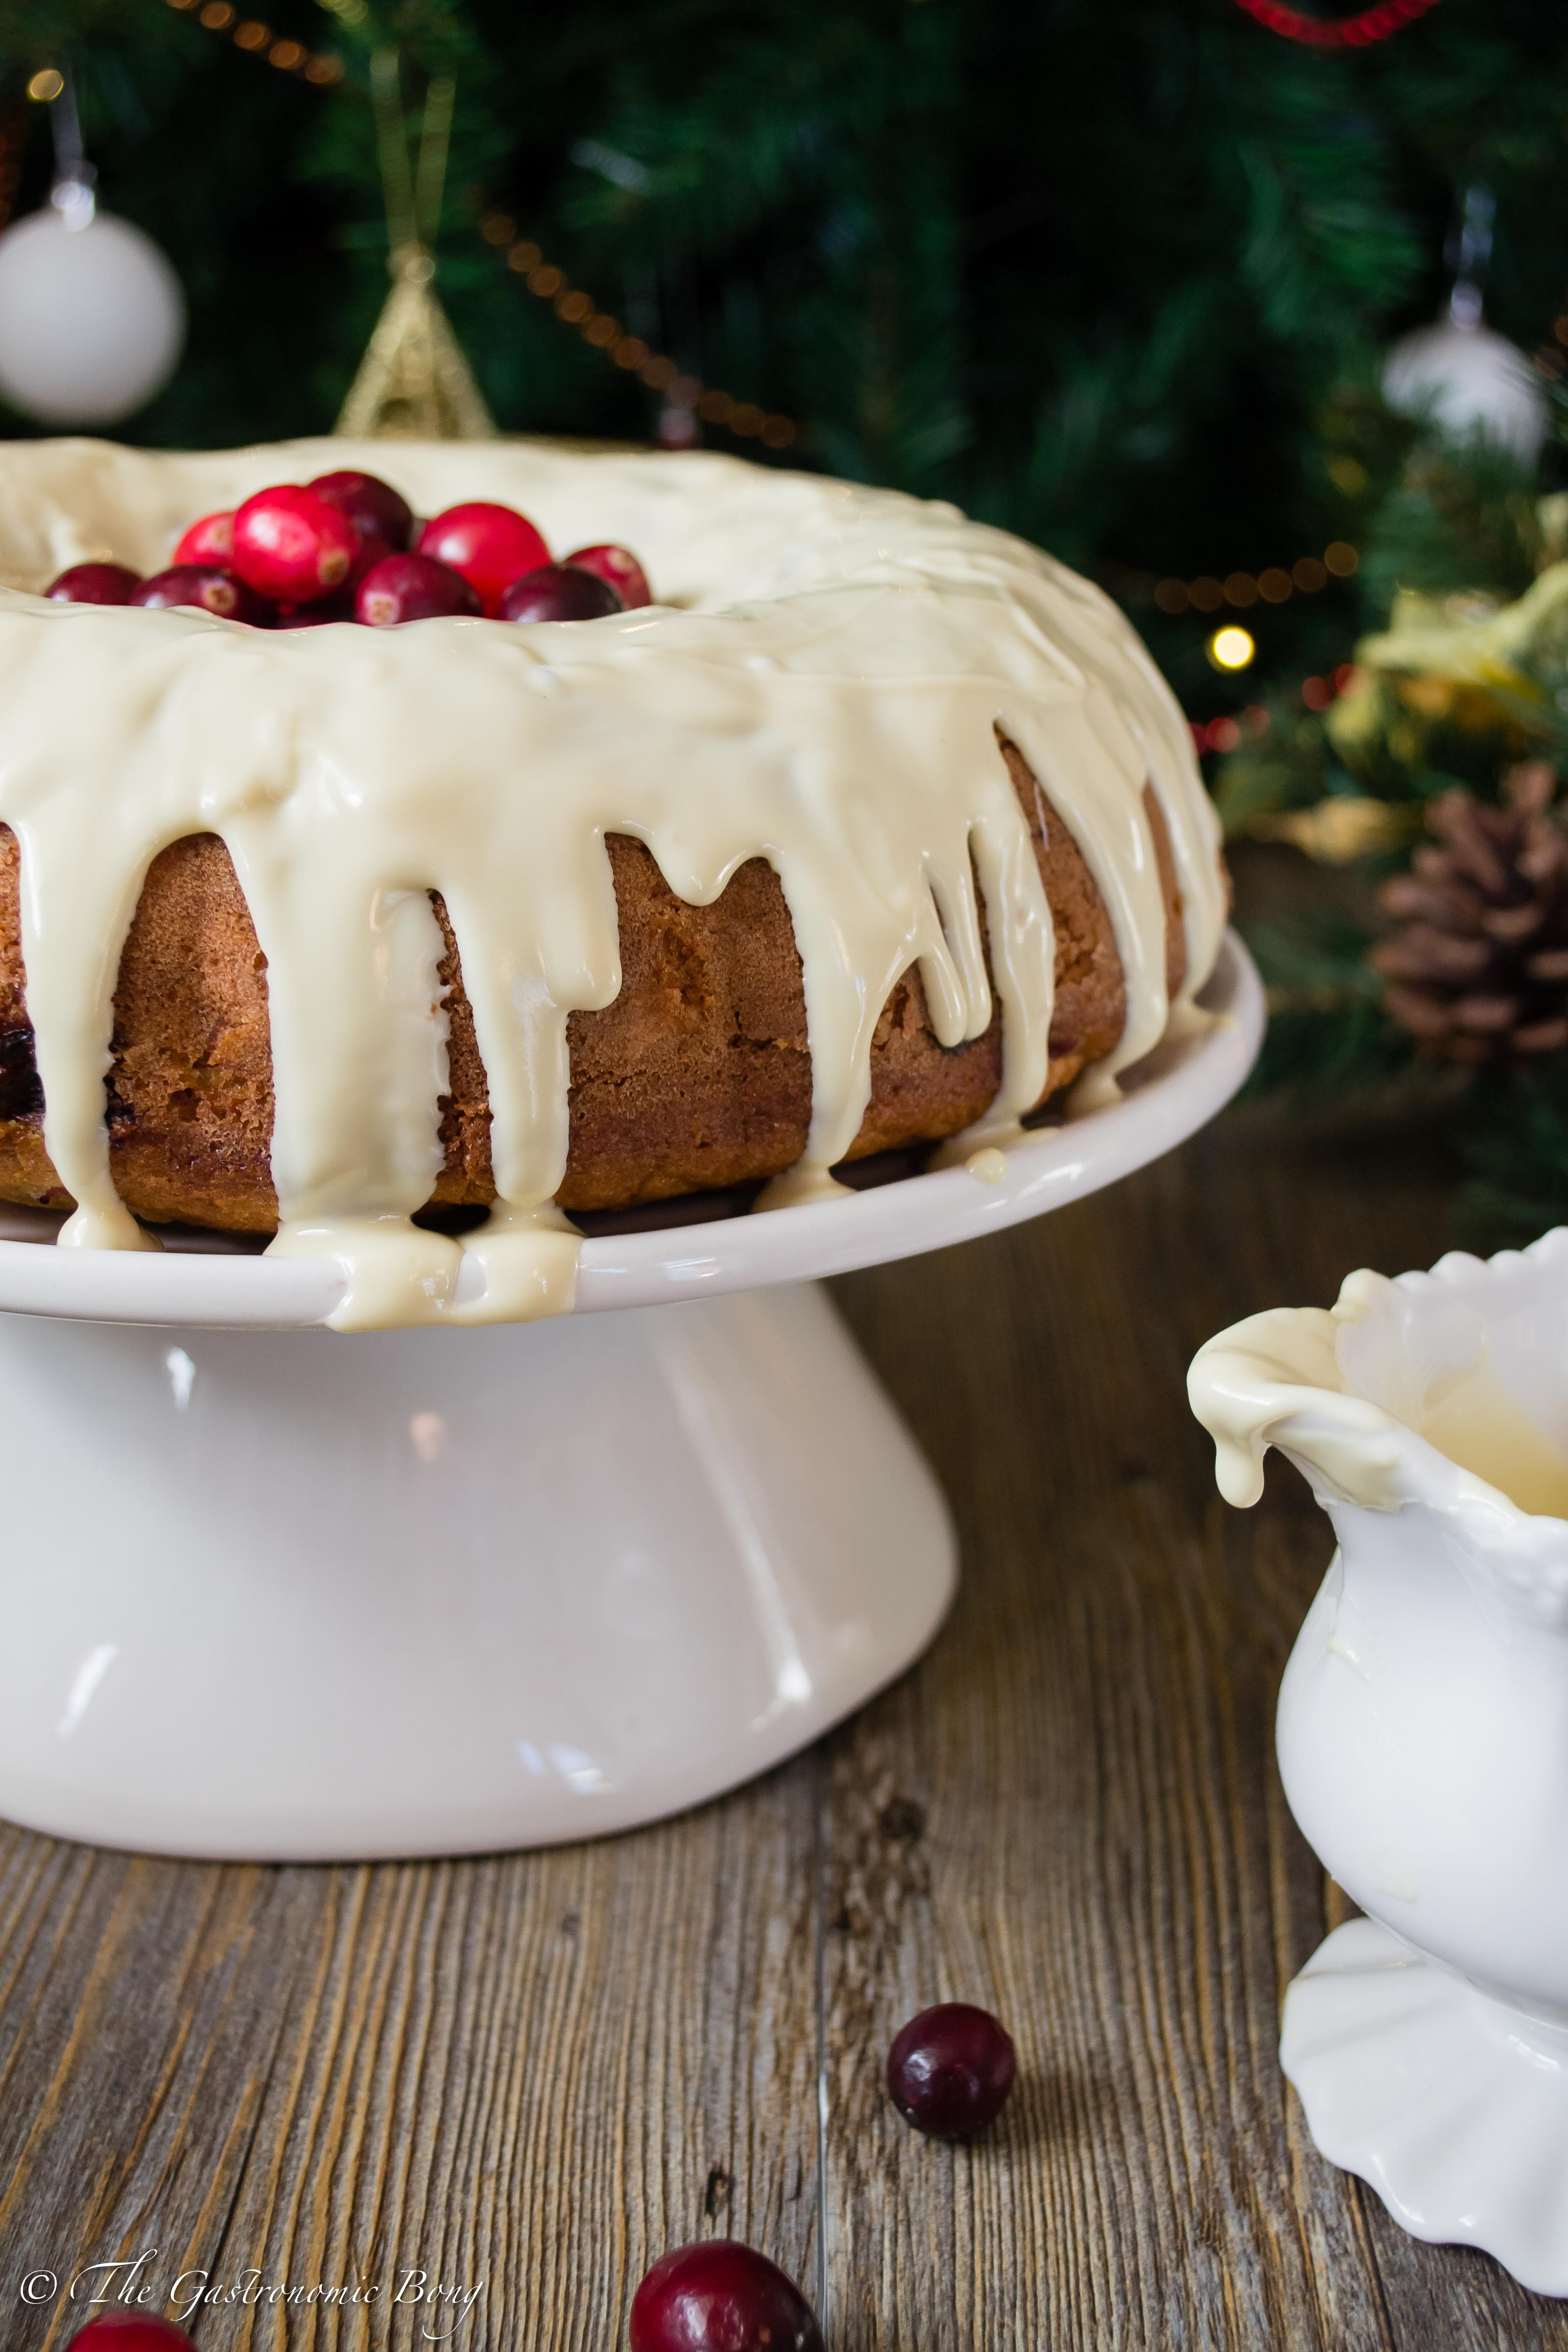 Orange and Cranberry Bundt Cake with White Chocolate Drizzle